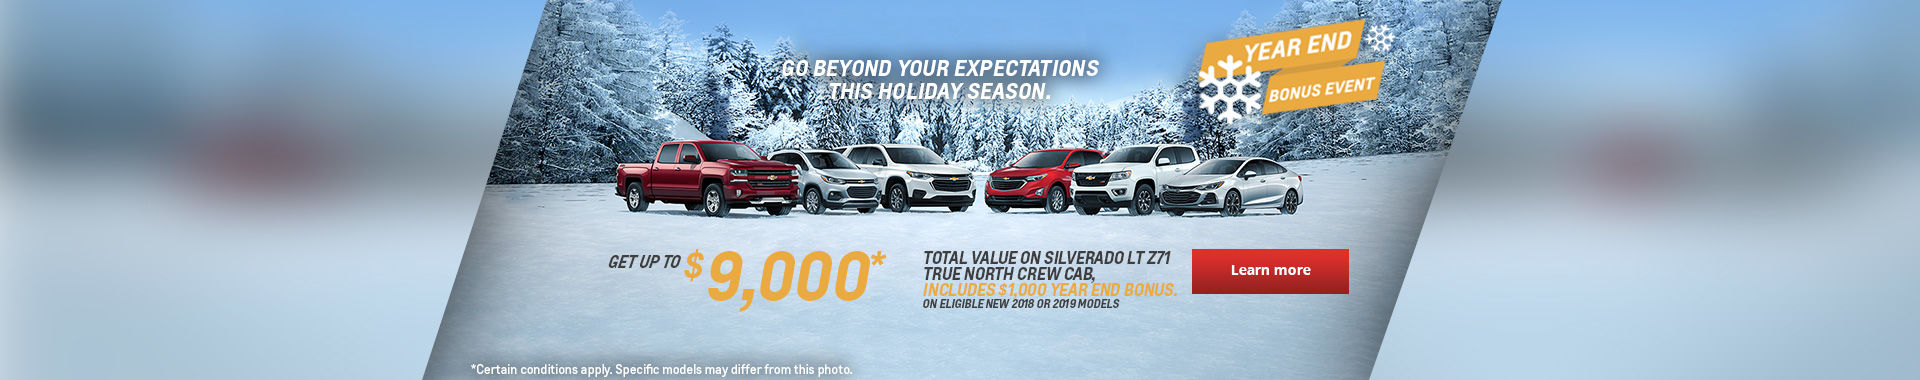 Chevrolet's Year End Bonus Event!